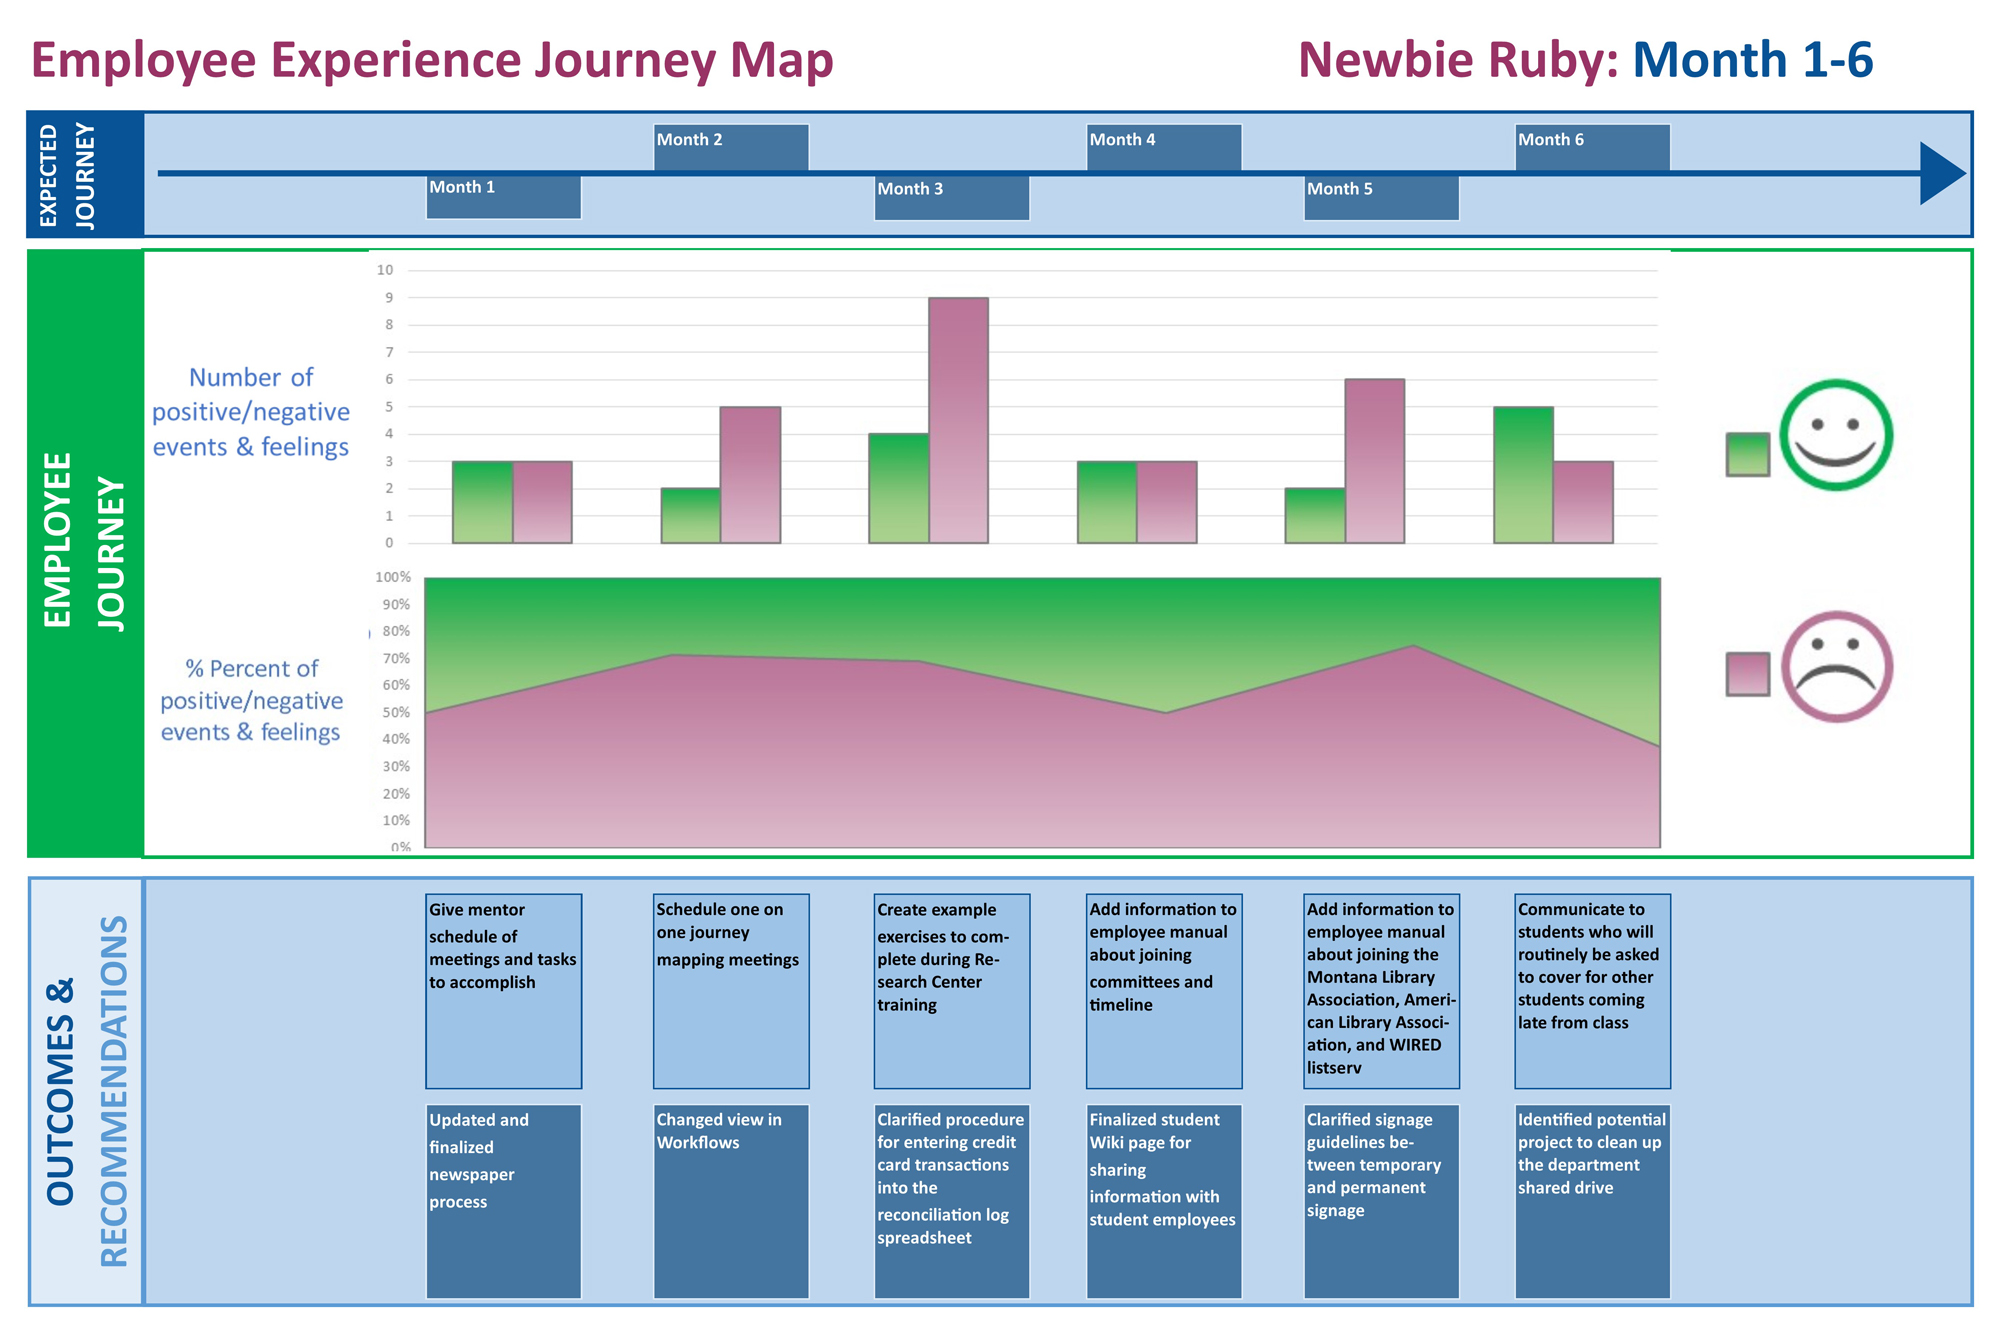 Figure 7. Newbie Ruby's positive and negative experiences over during their first six months.